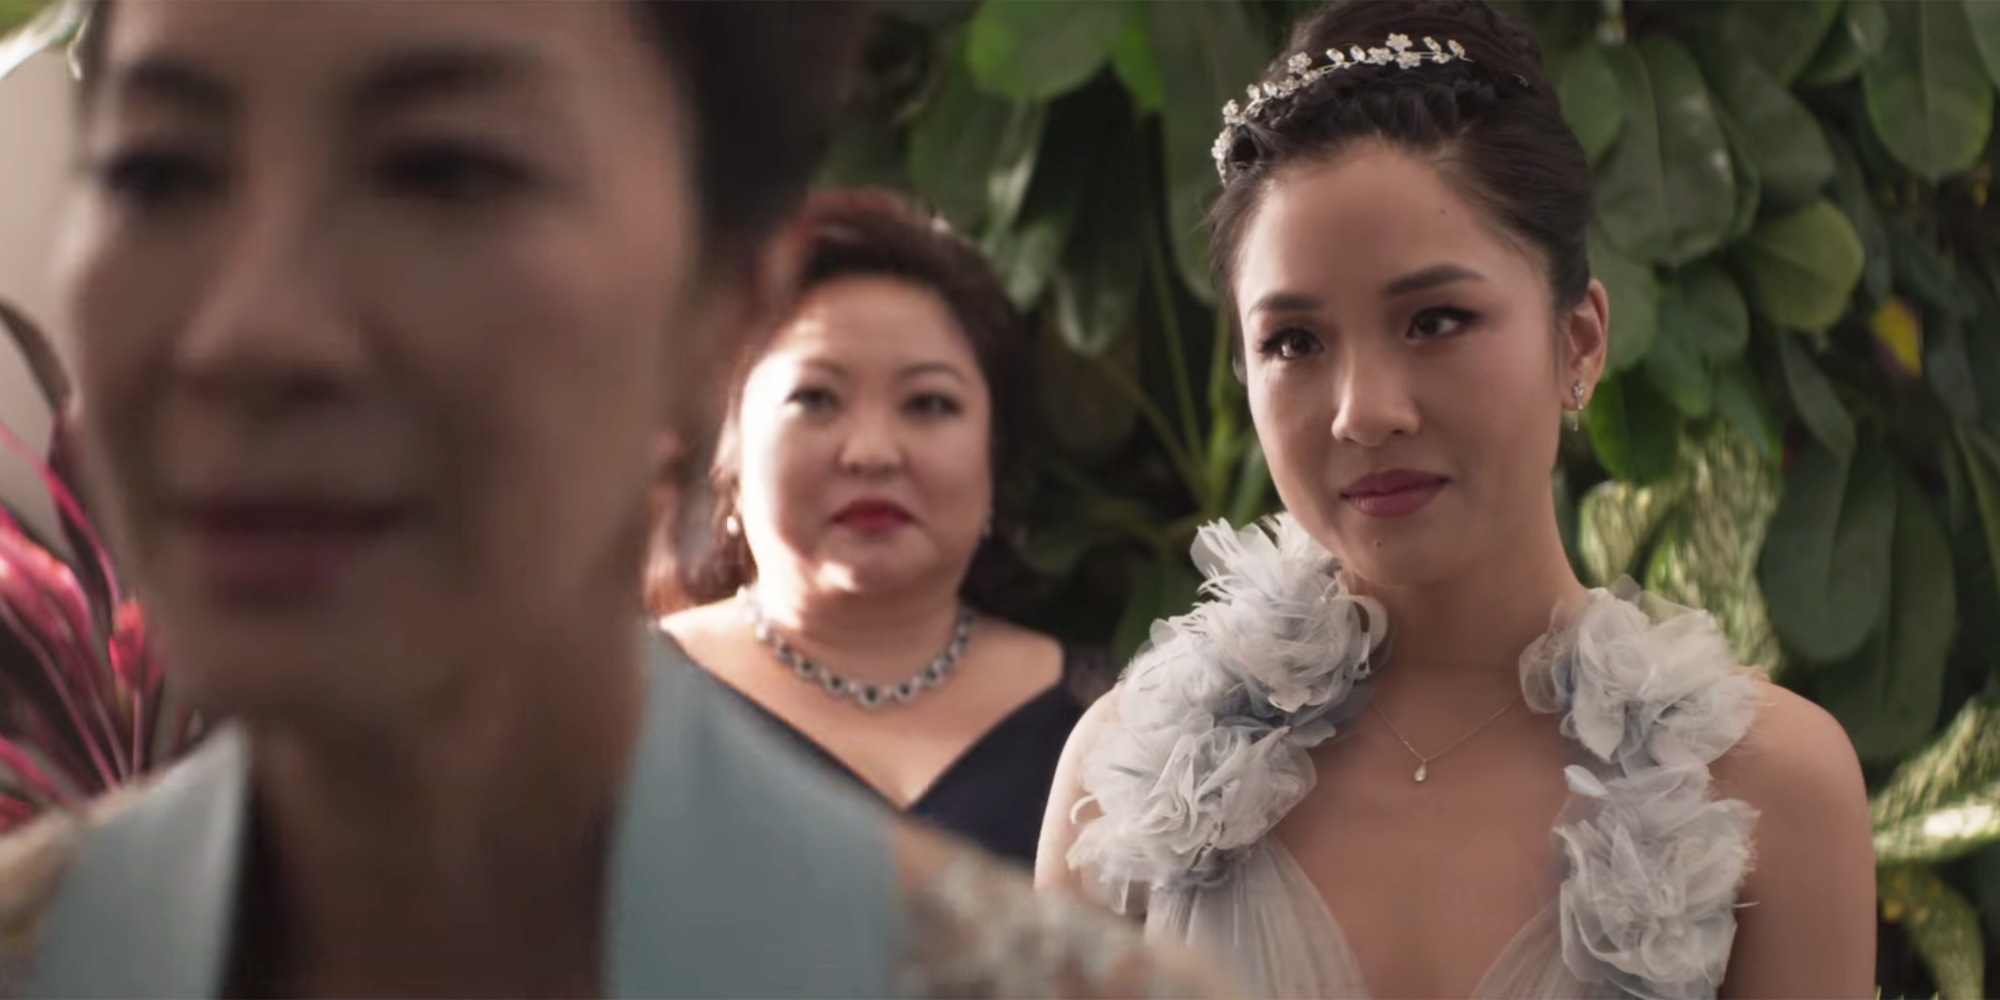 Everything You Need to Know About the Crazy Rich Asians Movie